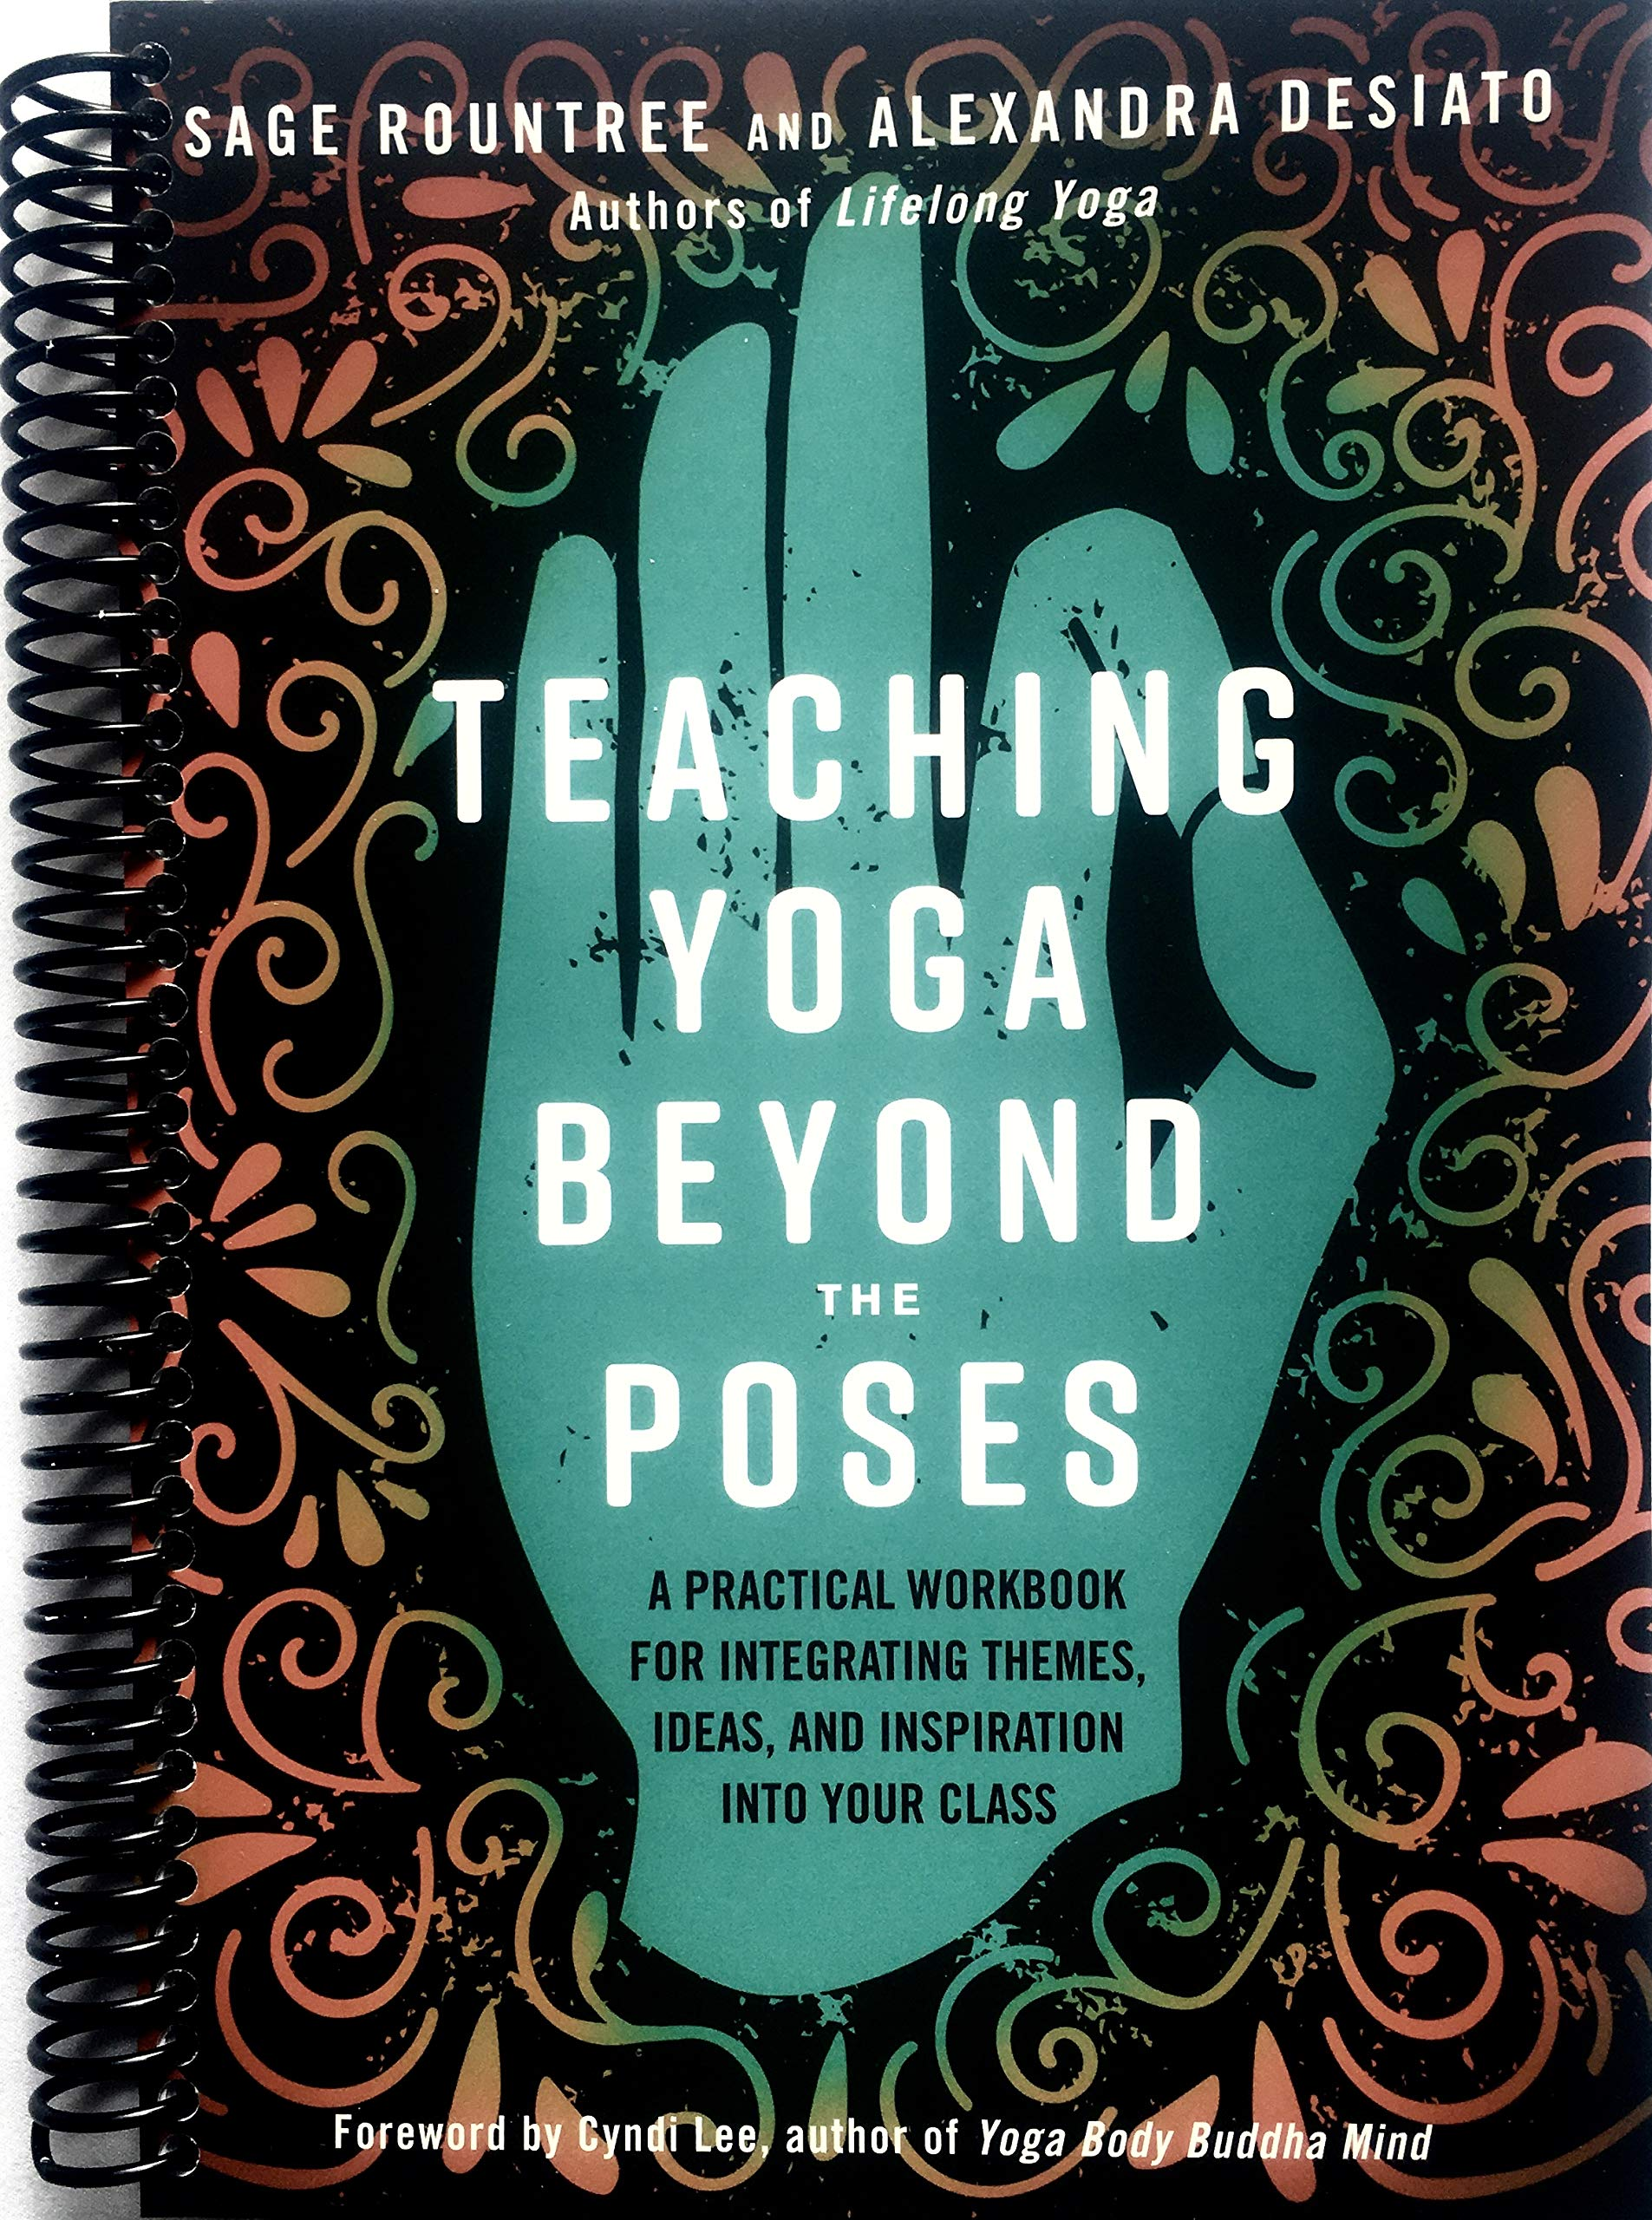 Teaching Yoga Beyond the Poses: A Practical Workbook for